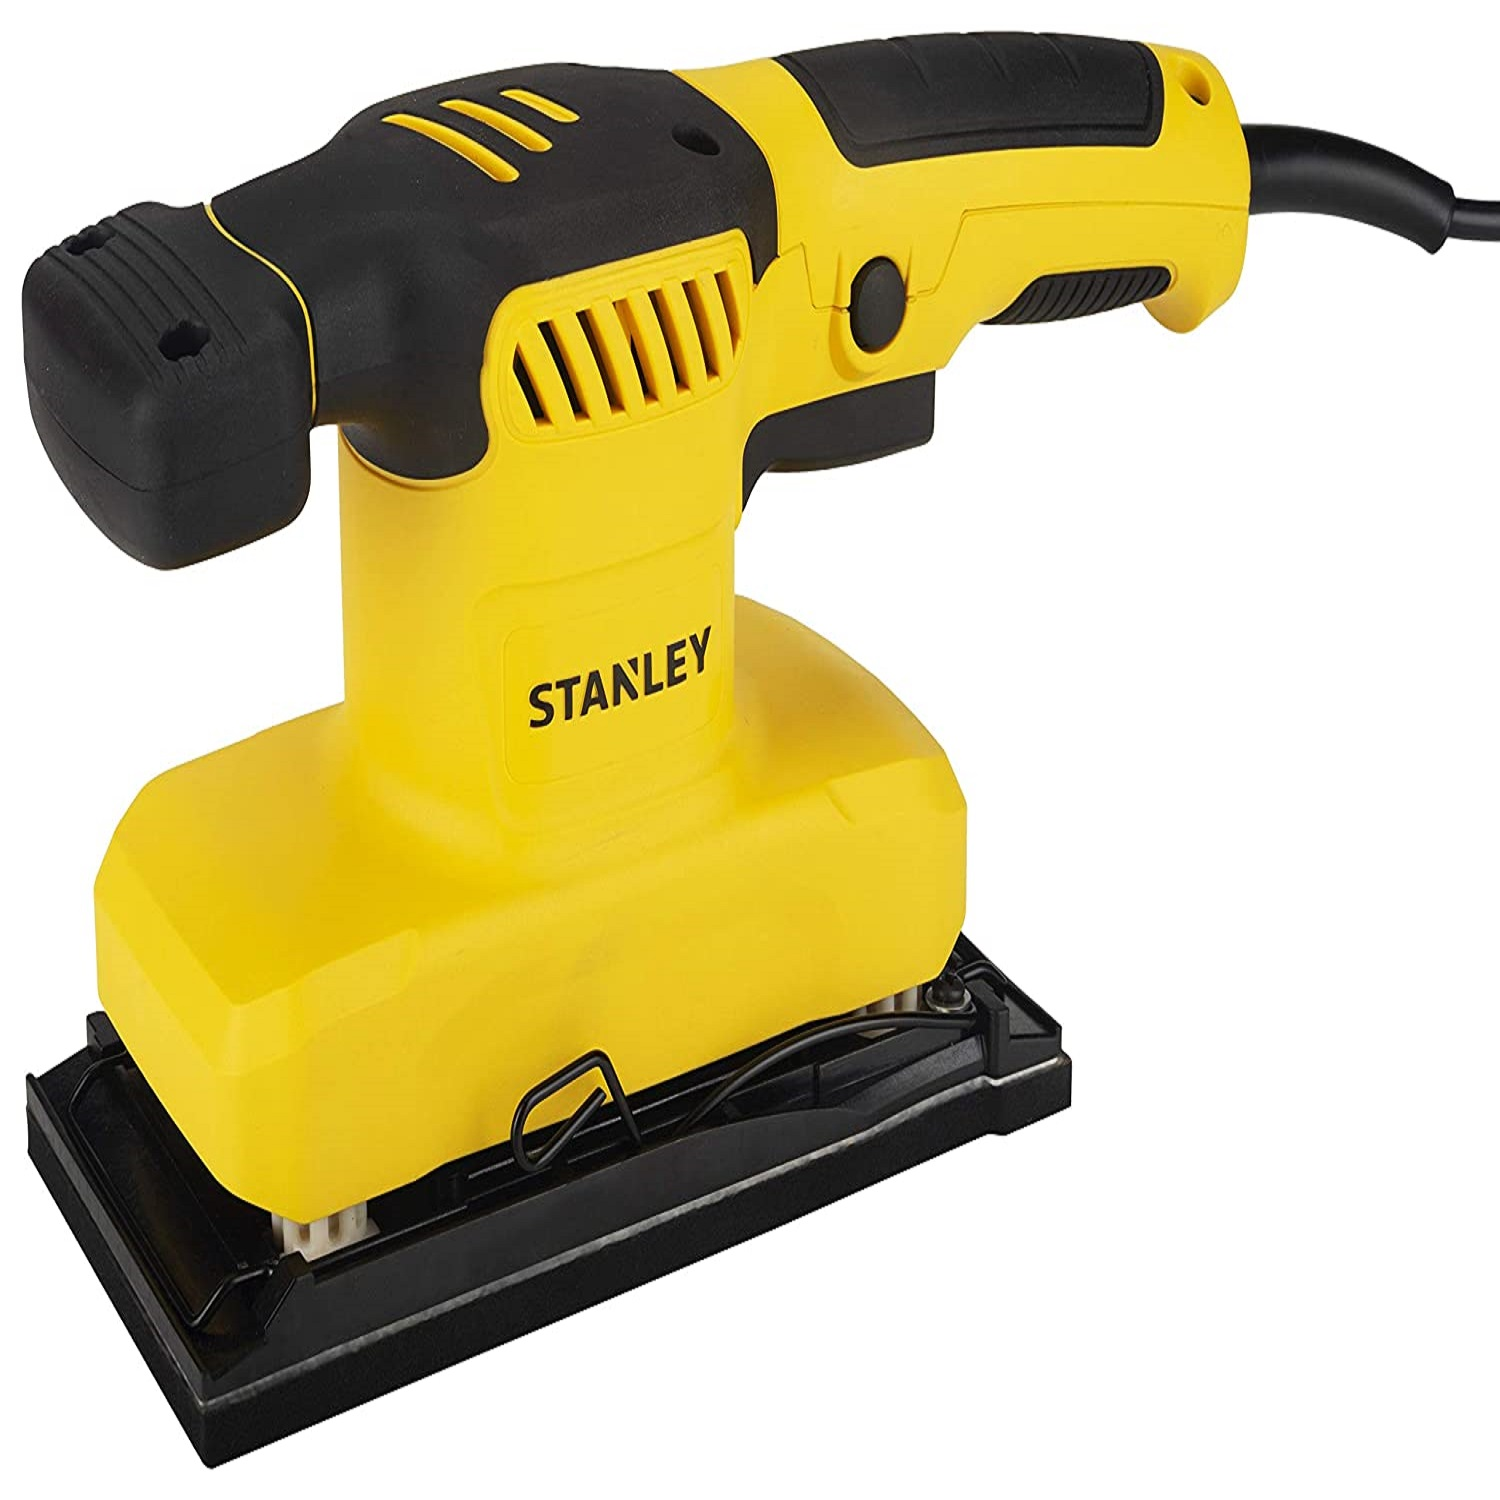 220W 1/4 Sheet Sander ( Will be replaced by SS24)